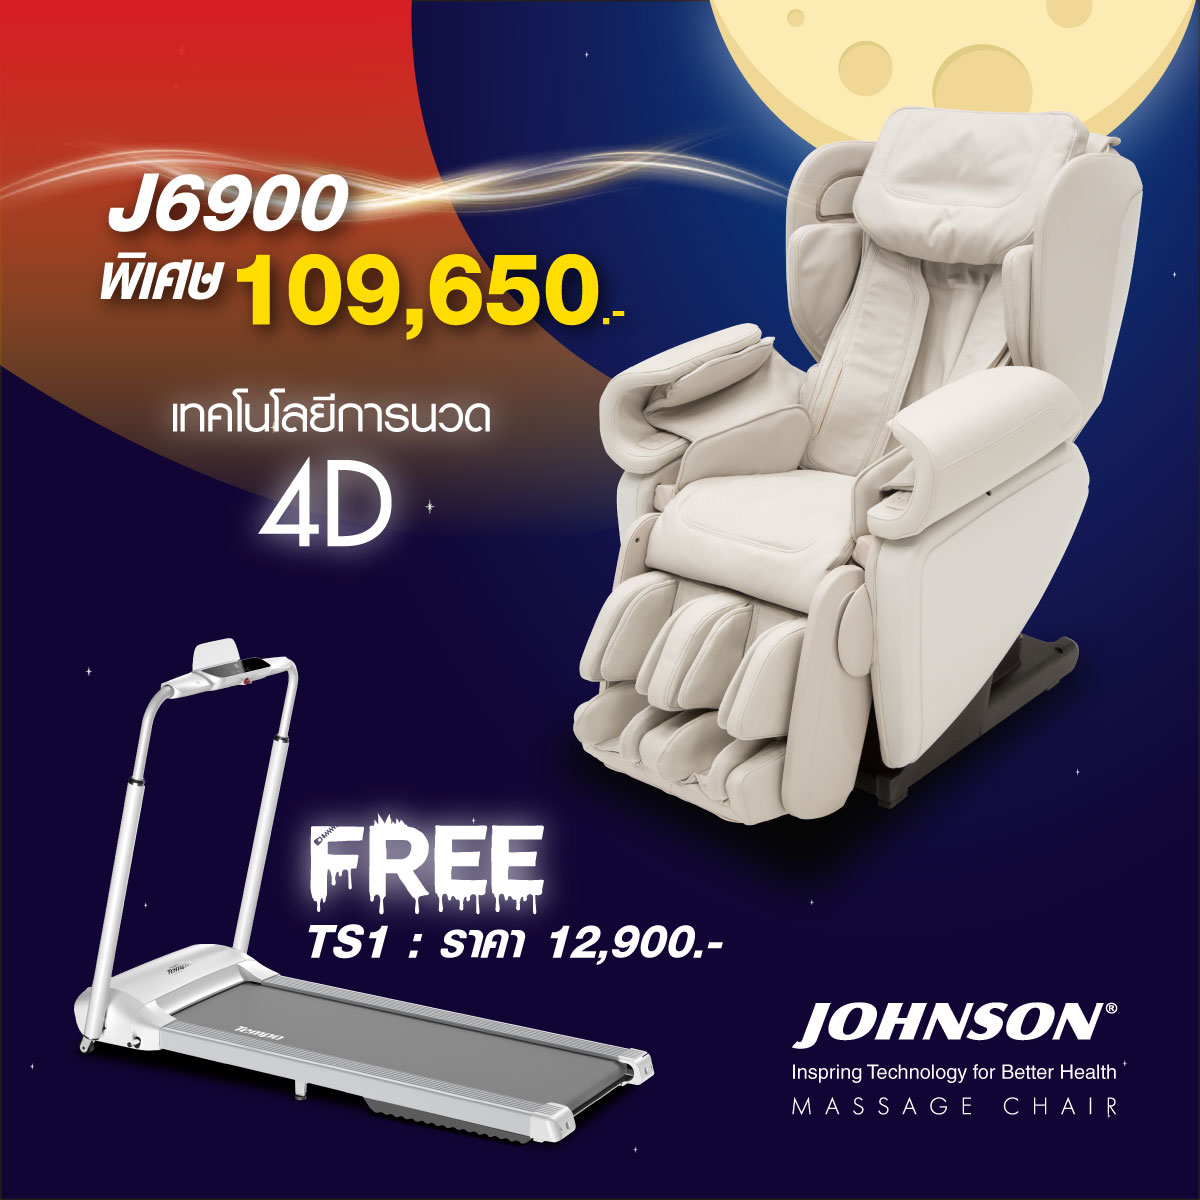 Massage chair J6900